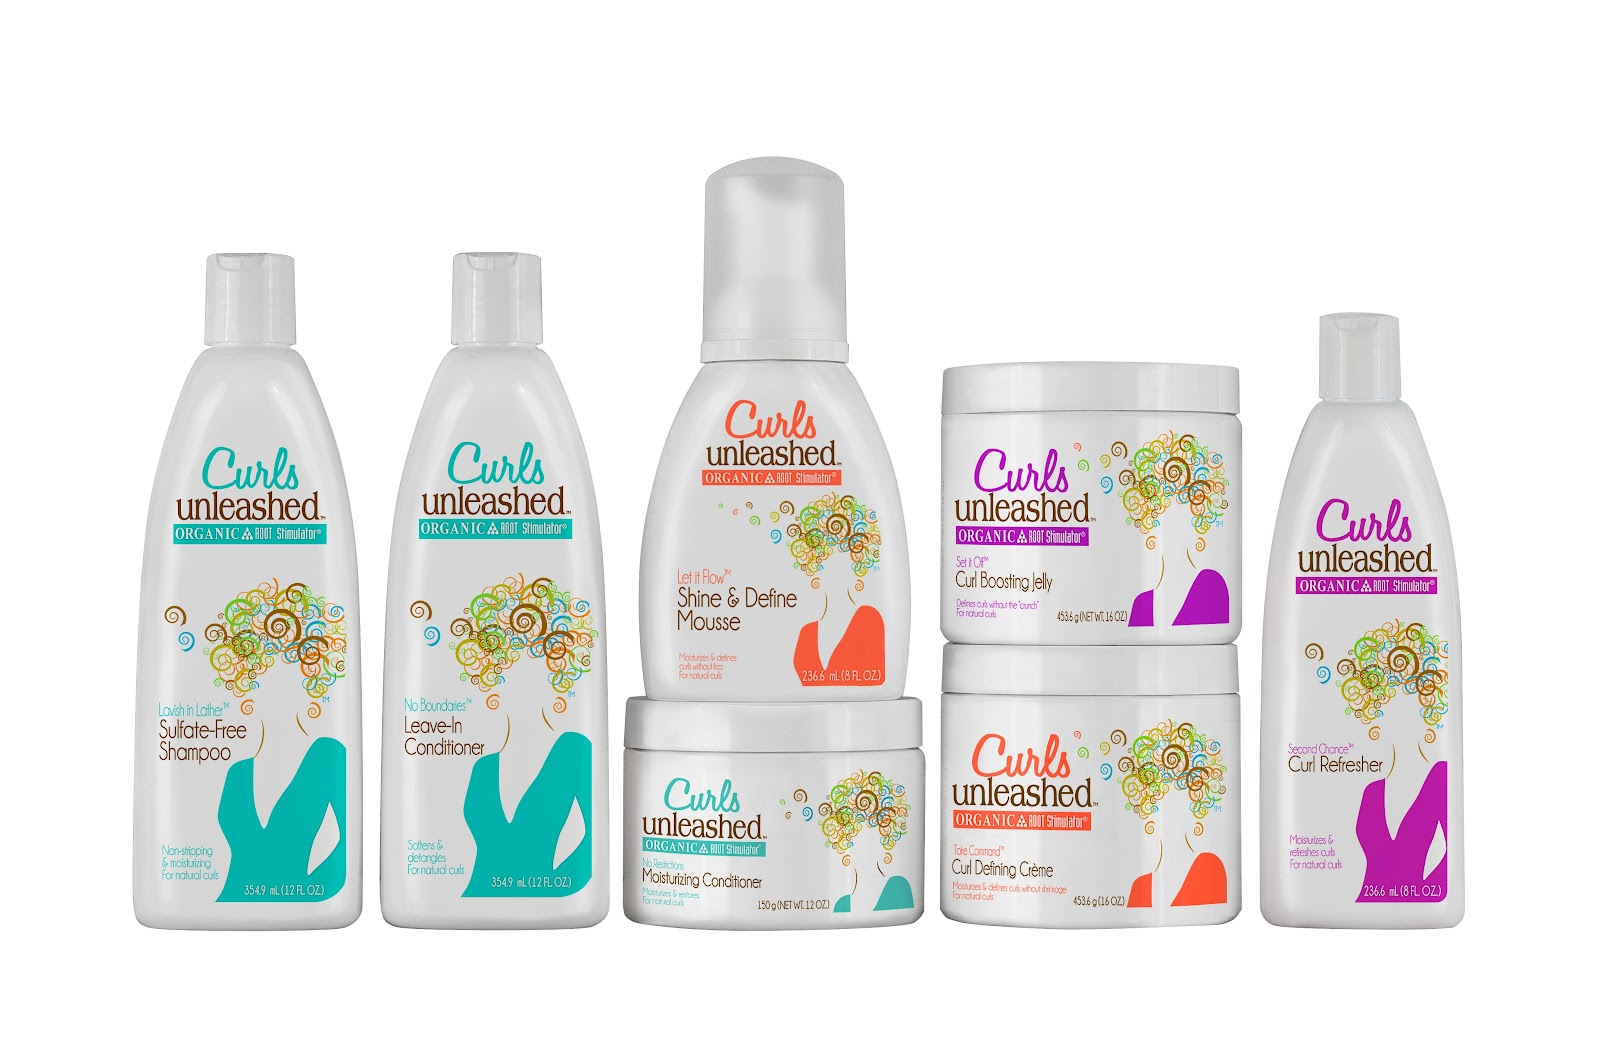 Curls Unleashed Natural Hair Products